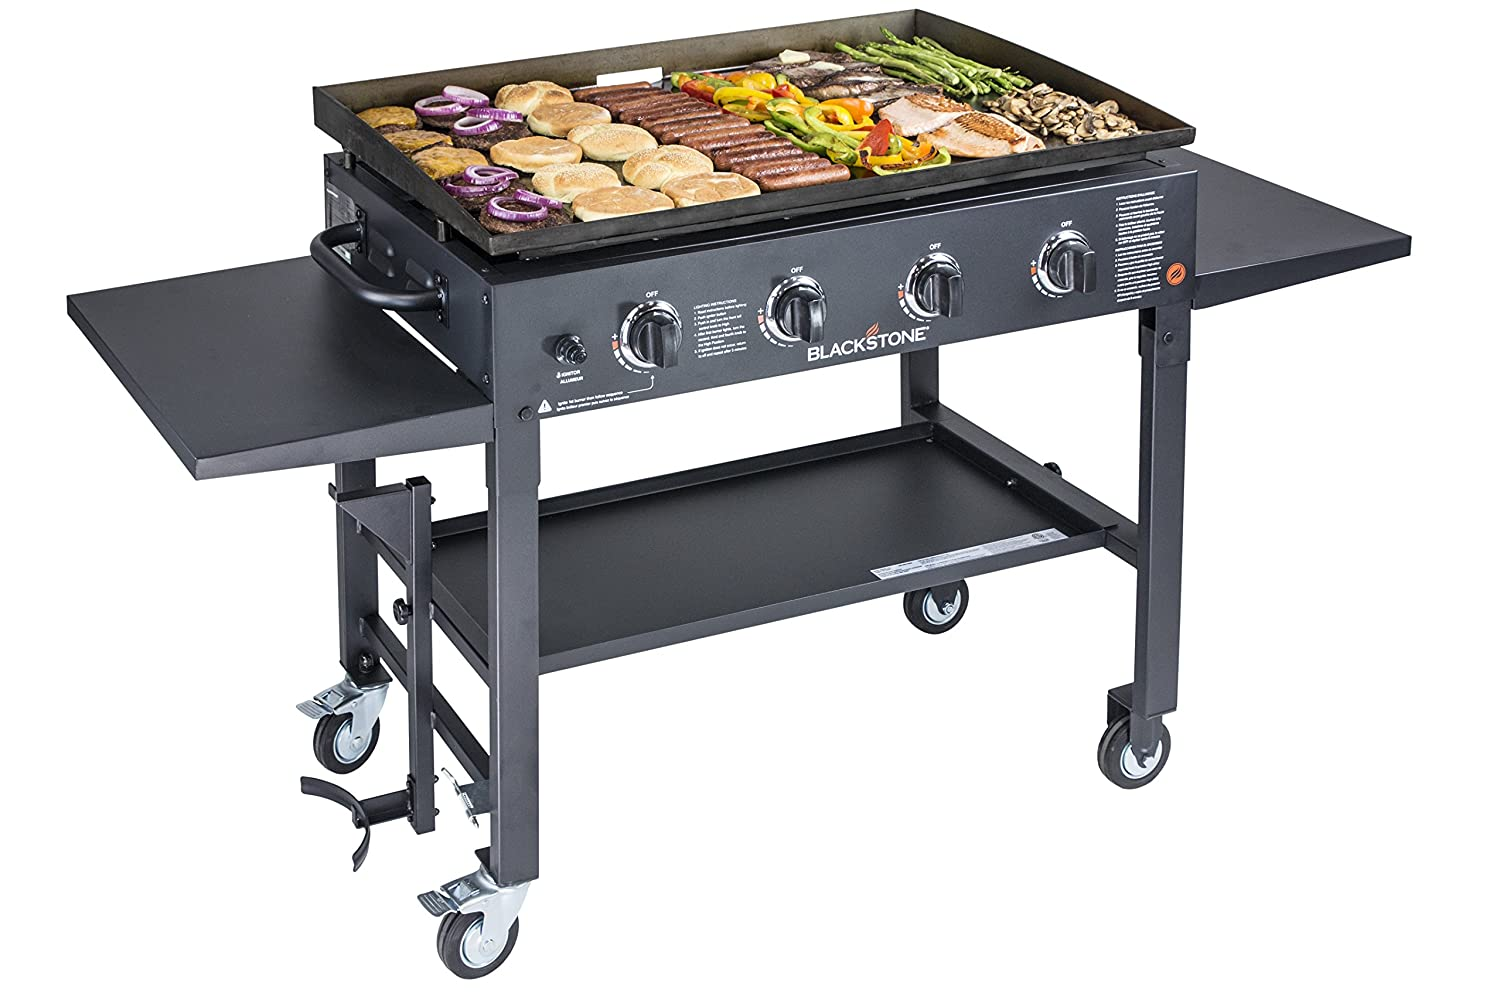 Blackstone Outdoor Gas Grill Reviews